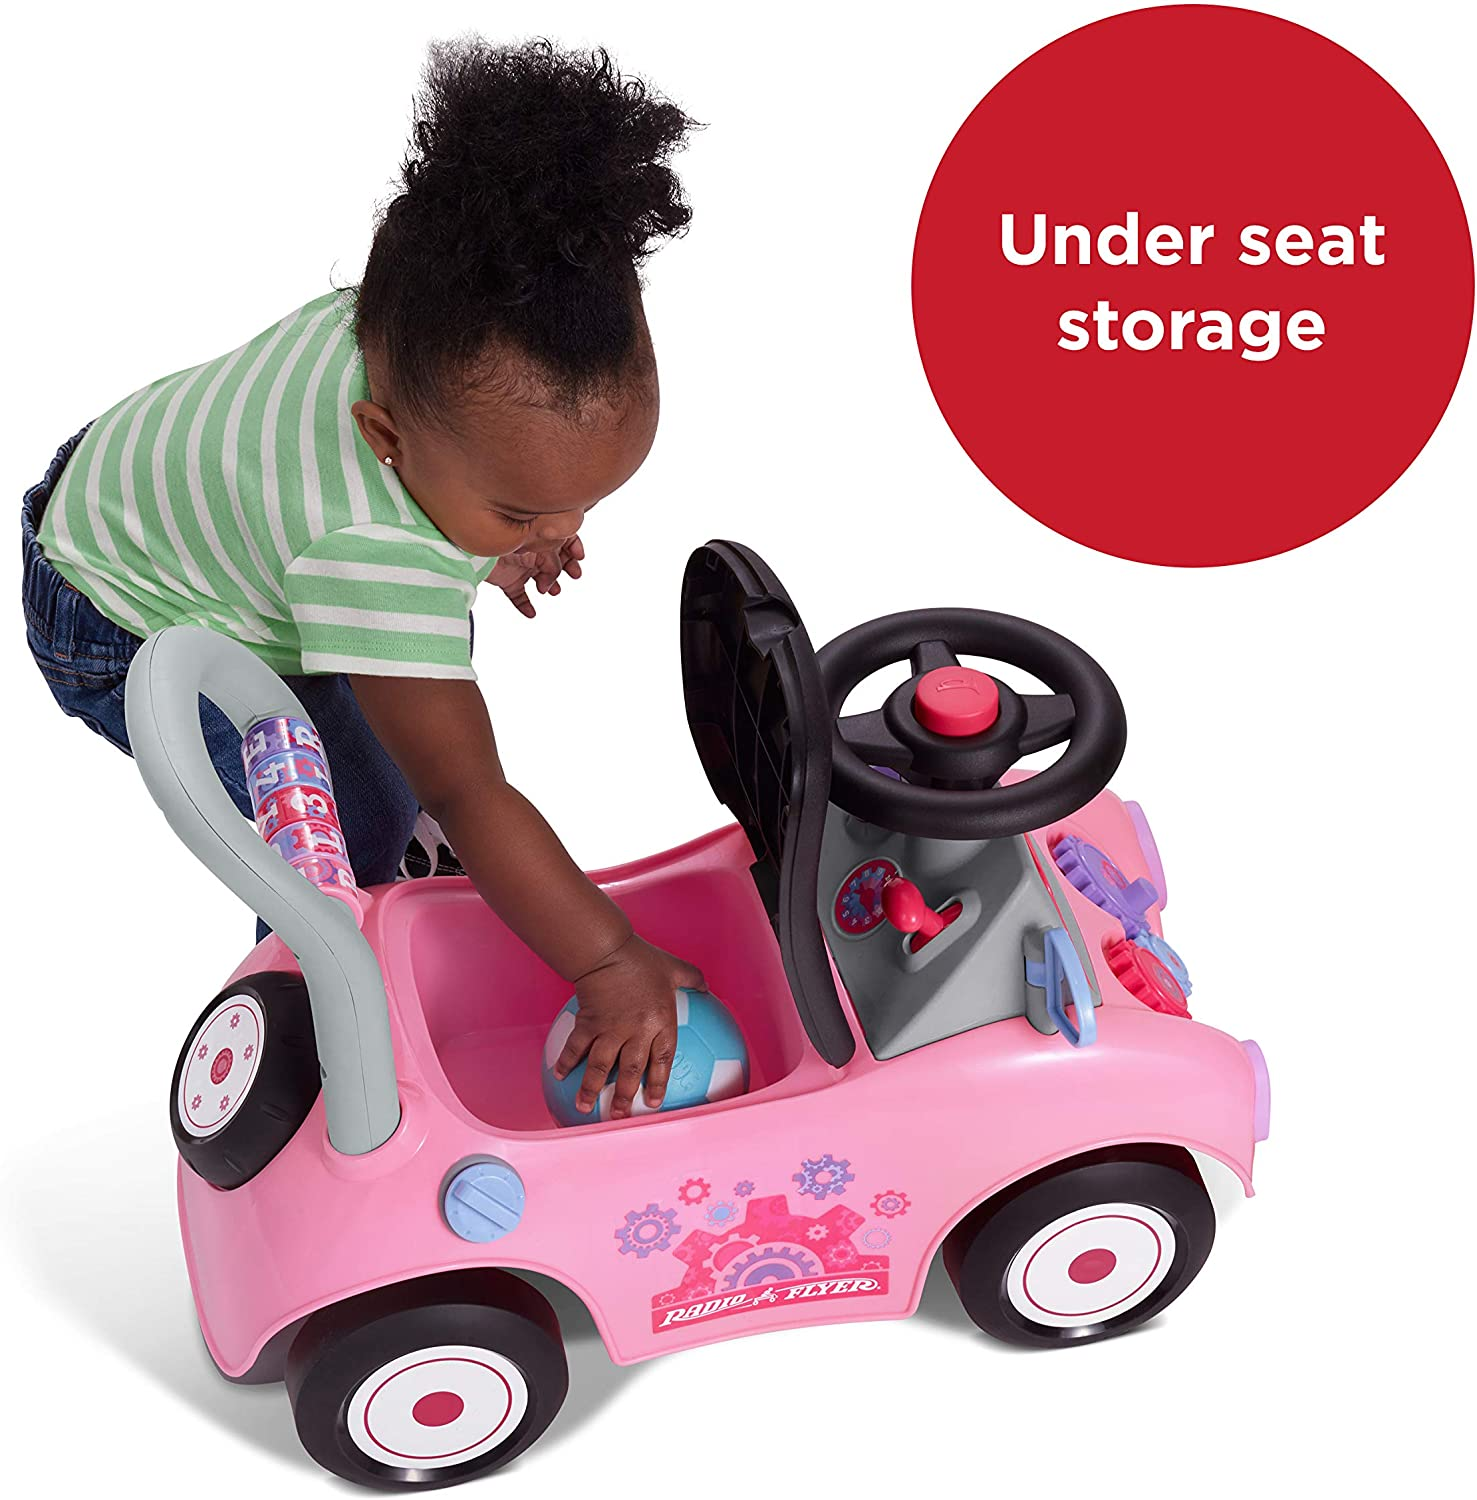 Radio Flyer Creativity Car, Sit to Stand Toddler Ride On Toy, Ages 1-3: Toys & Games